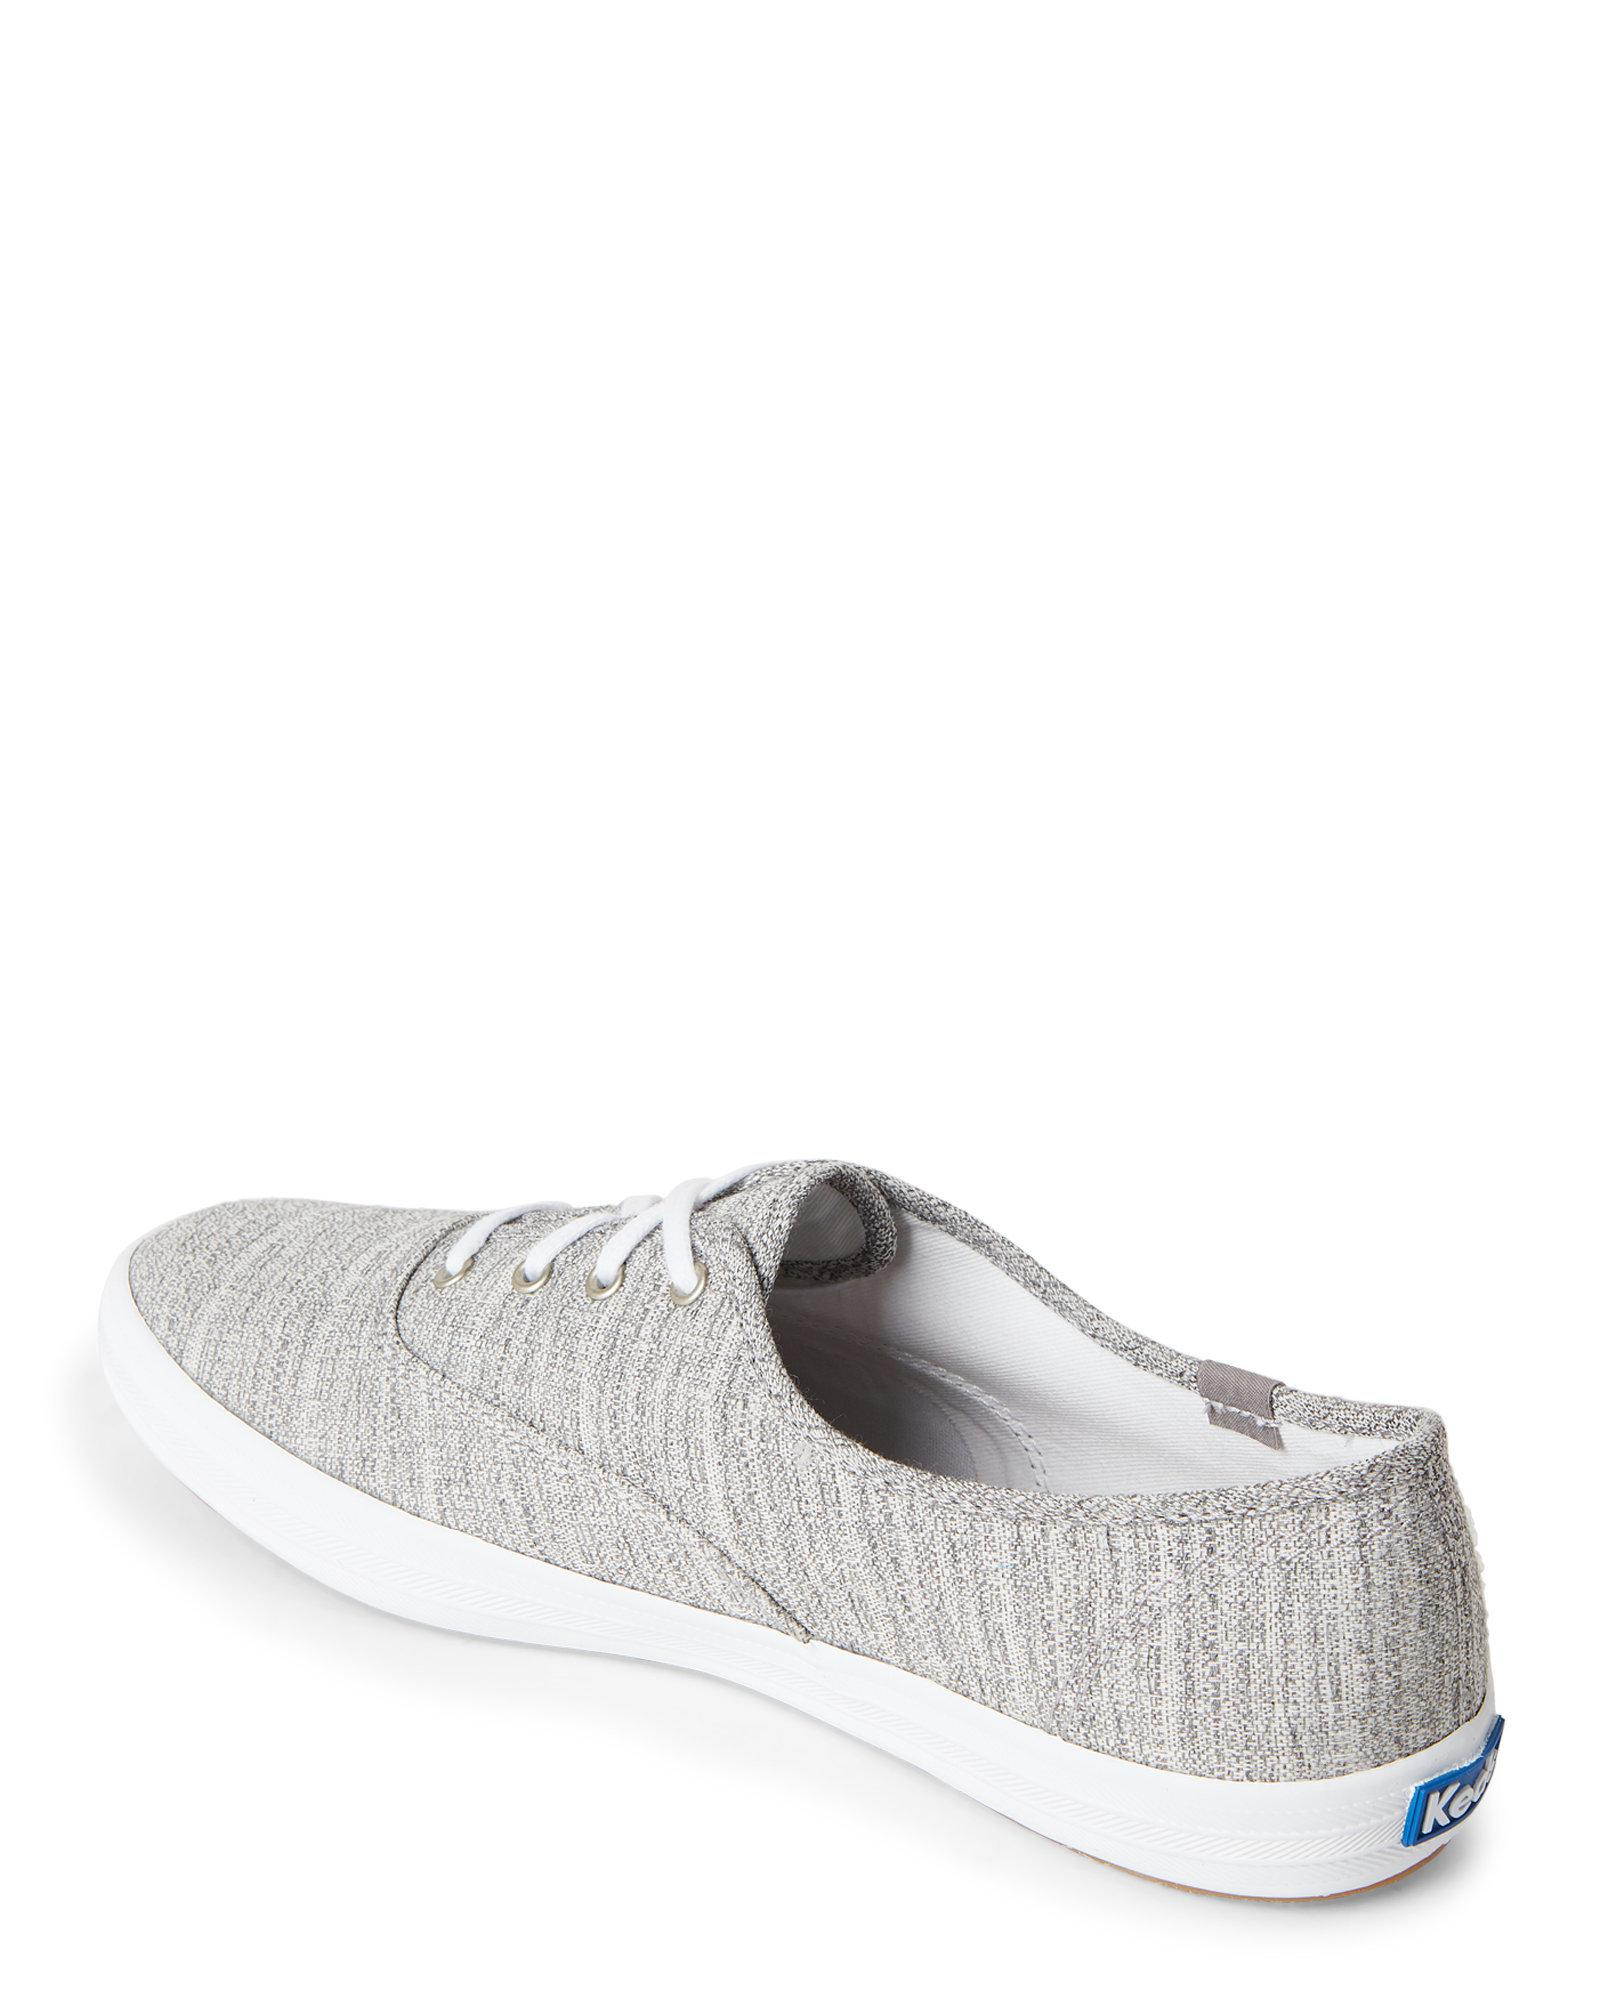 1e1f167d700 Lyst - Keds Grey Champion Knit Sneakers in Gray